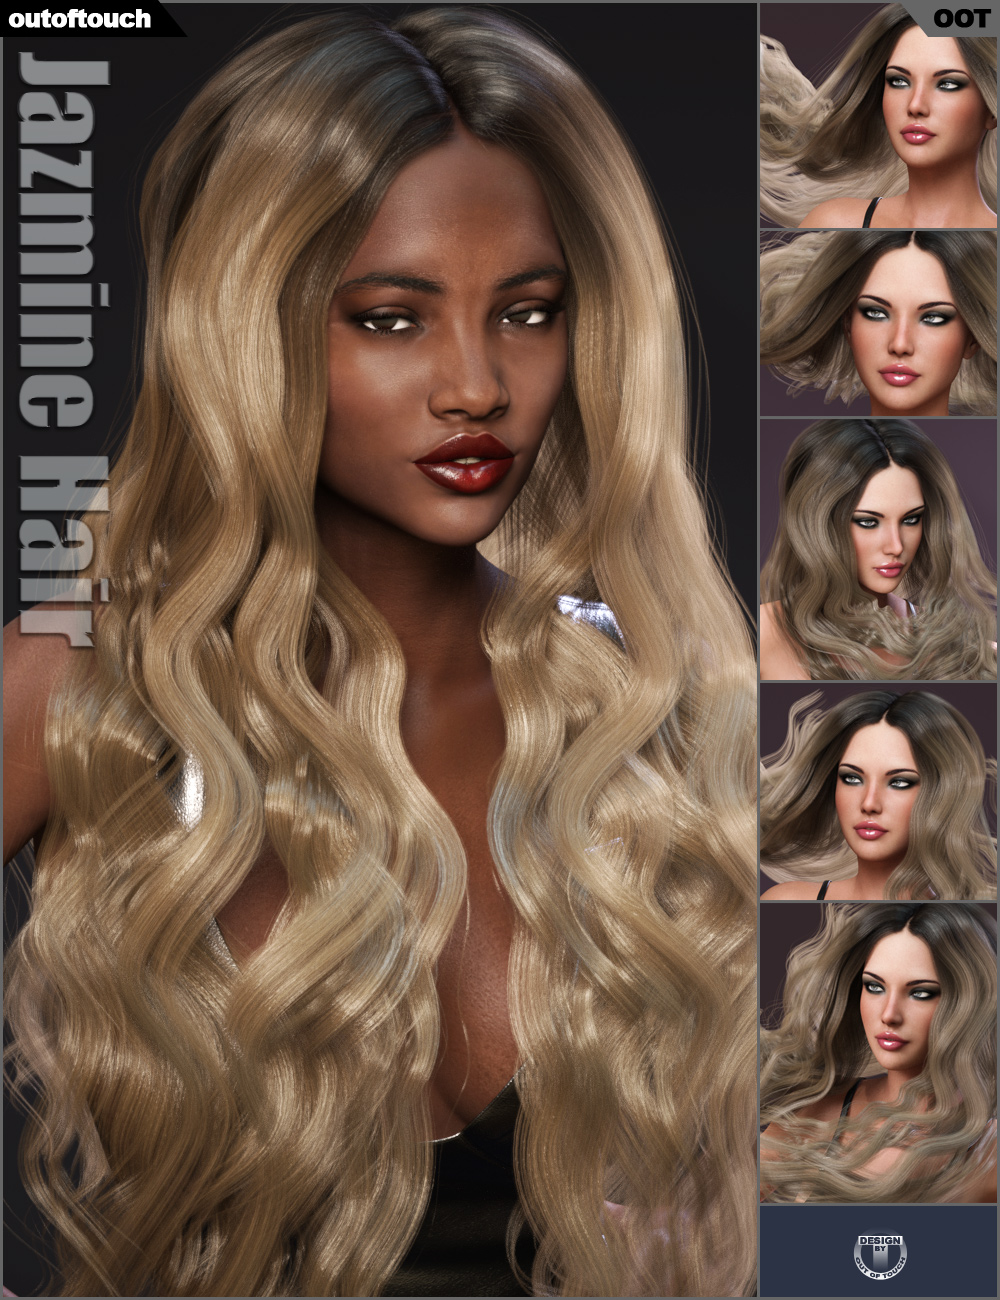 Jazmine Hair by: outoftouch, 3D Models by Daz 3D